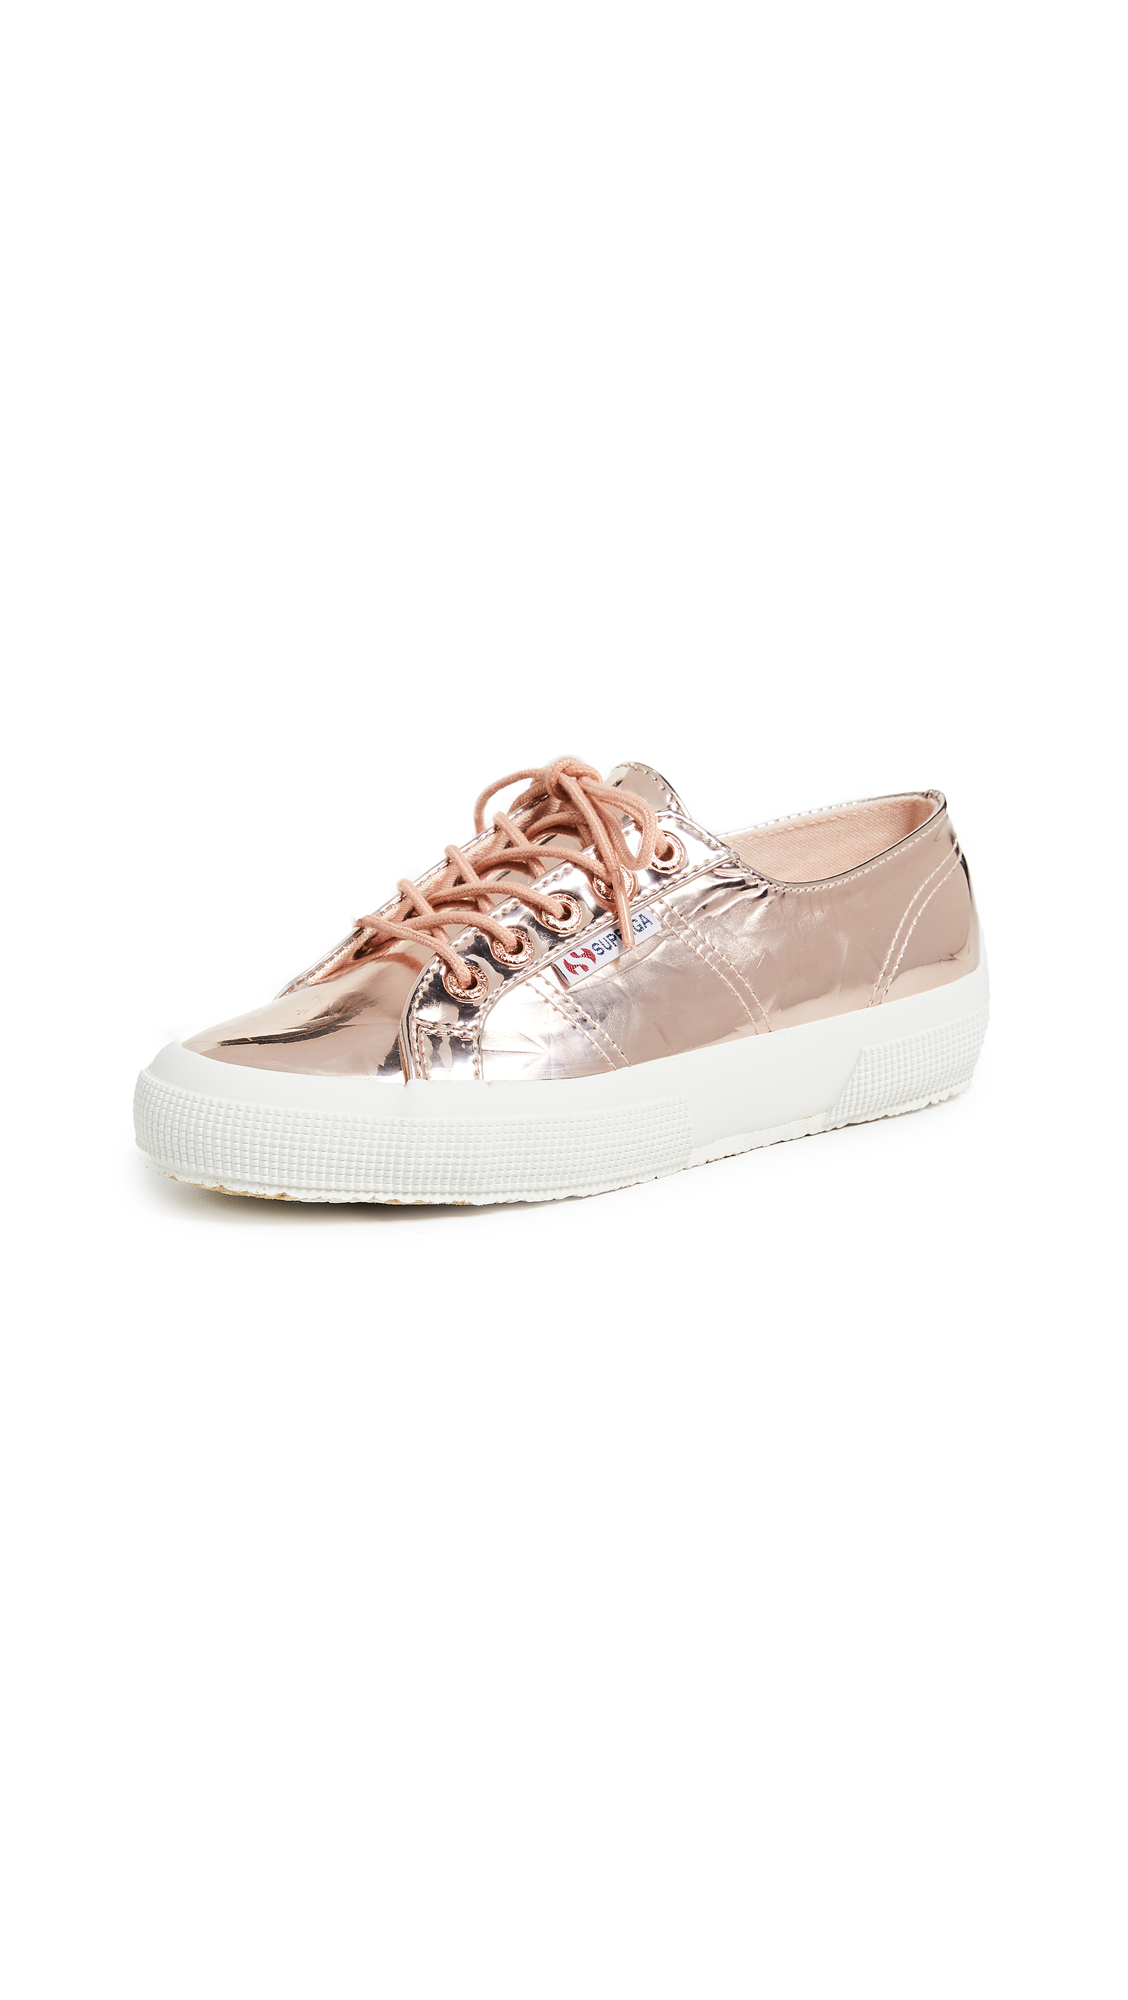 Superga 2750 Metallic Sneakers - Rose Gold